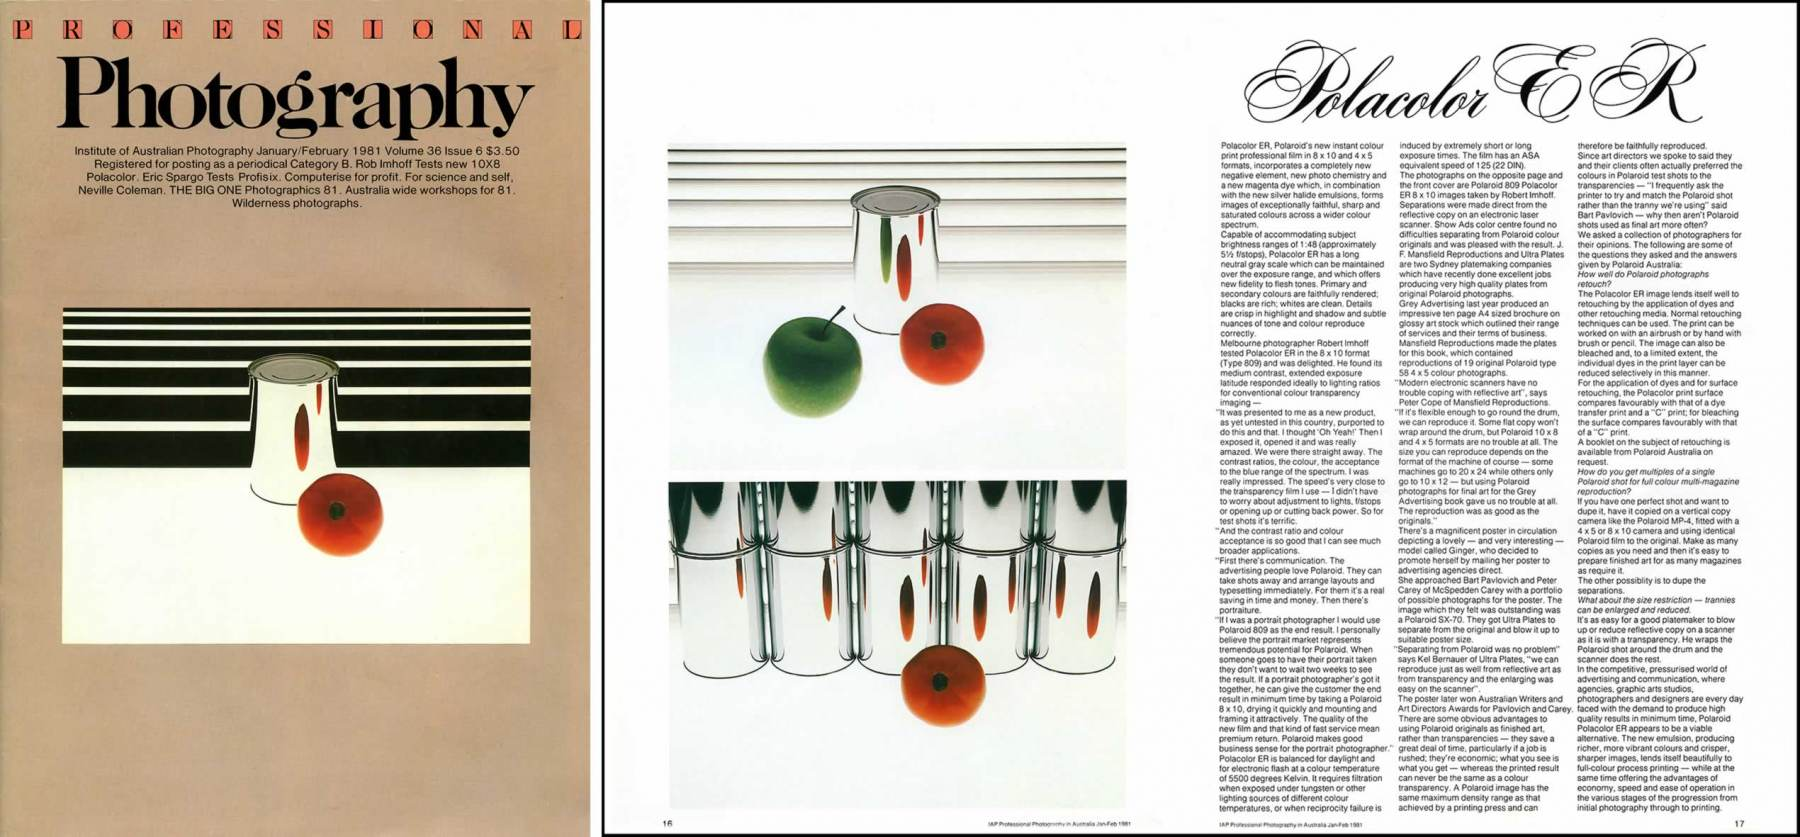 Institute of Australian Photography (IAP) magazine cover & two page POLAROID article. 1981